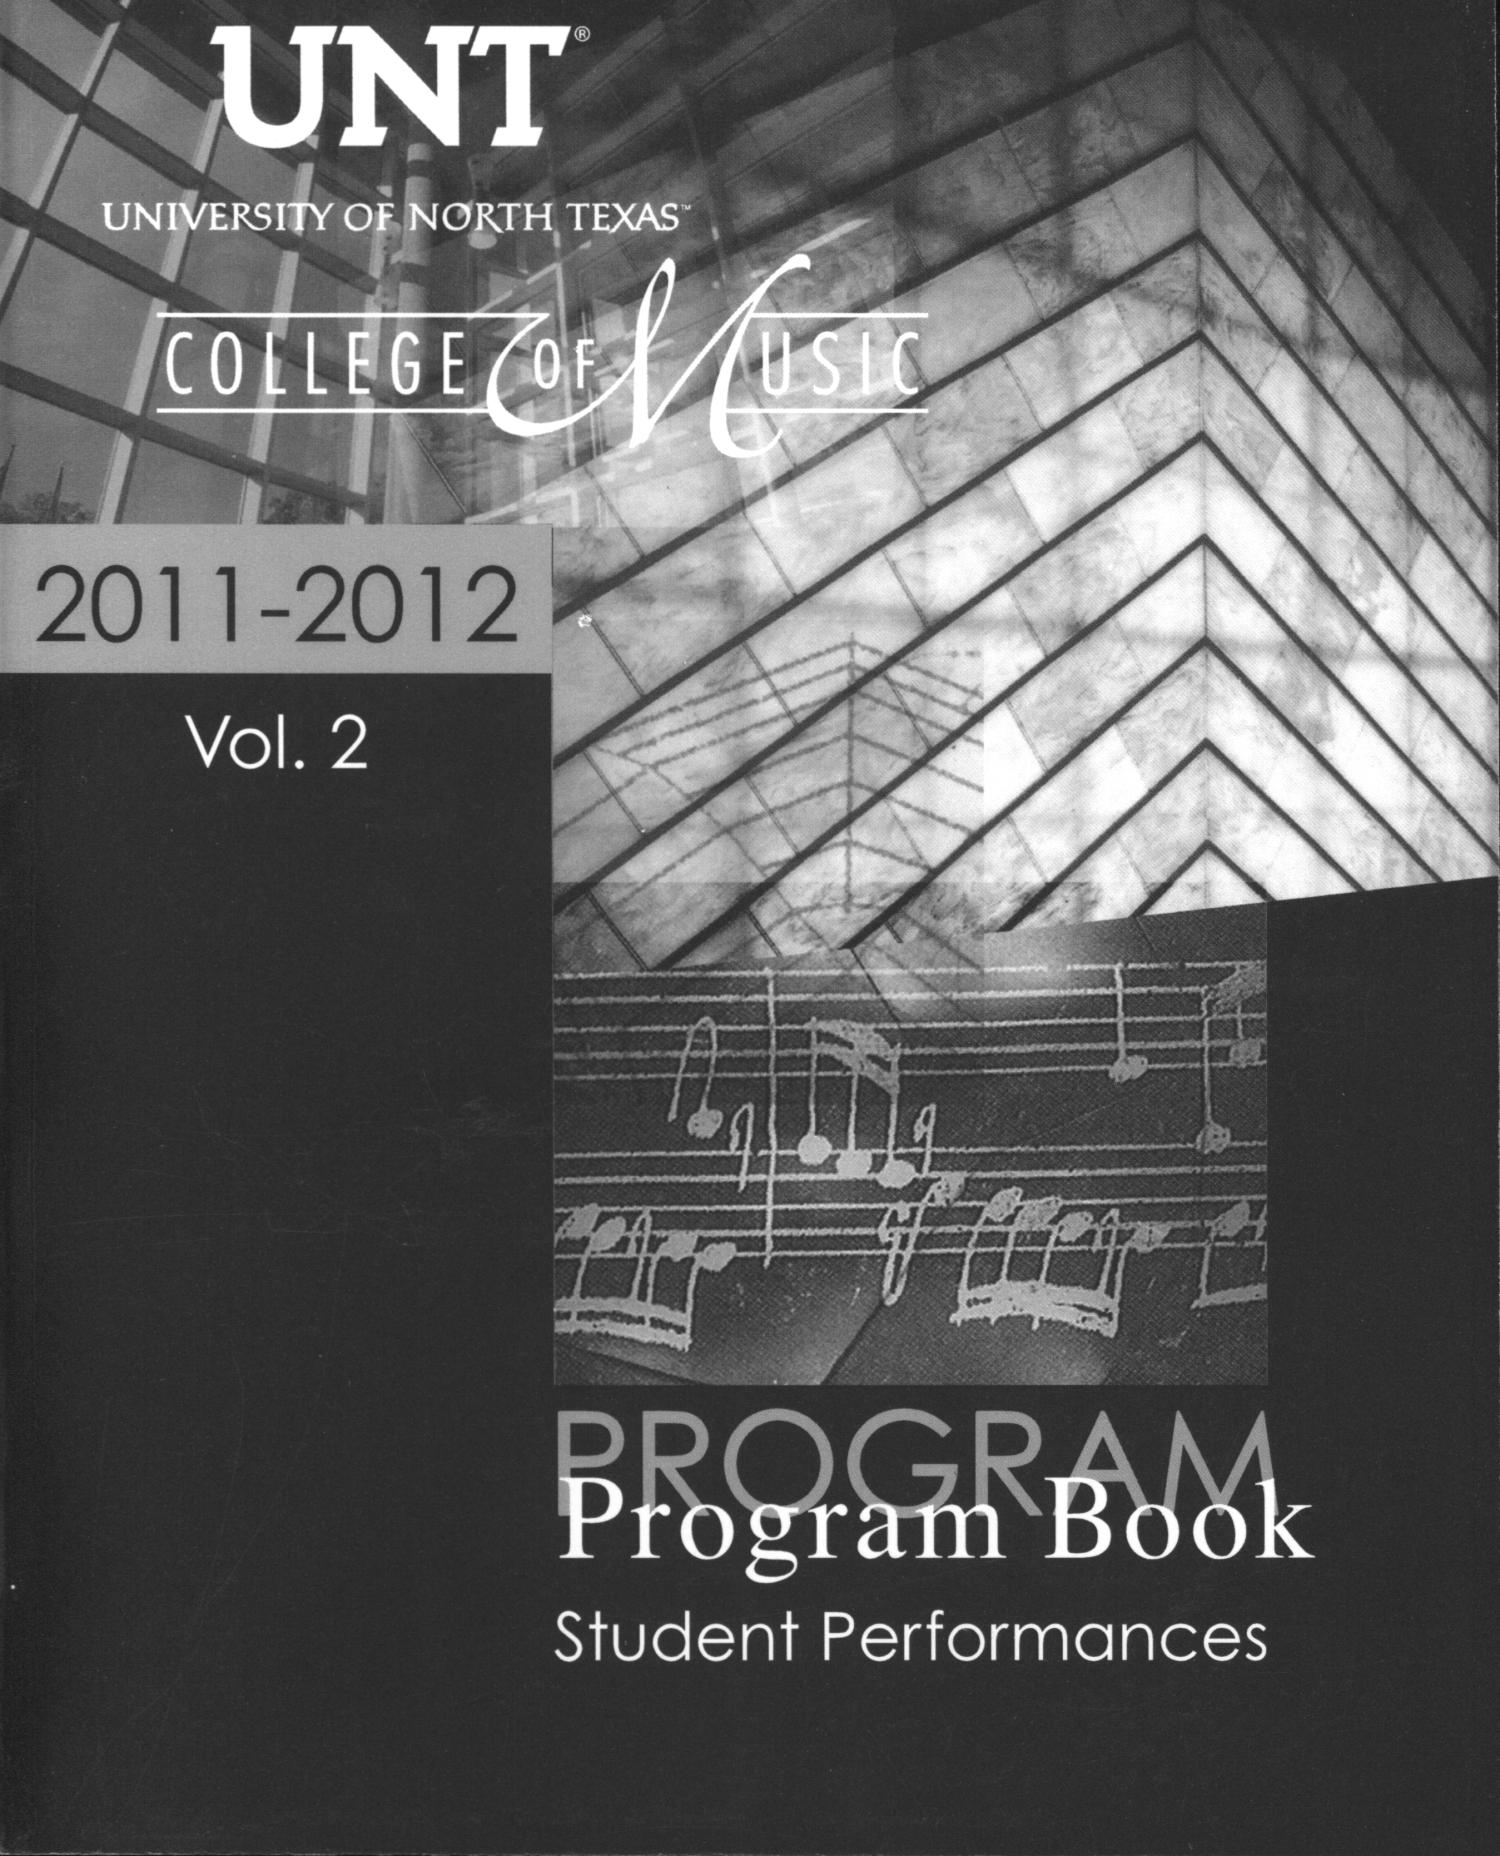 College of Music Program Book 2011-2012: Student Performances, Volume 2                                                                                                      Front Cover